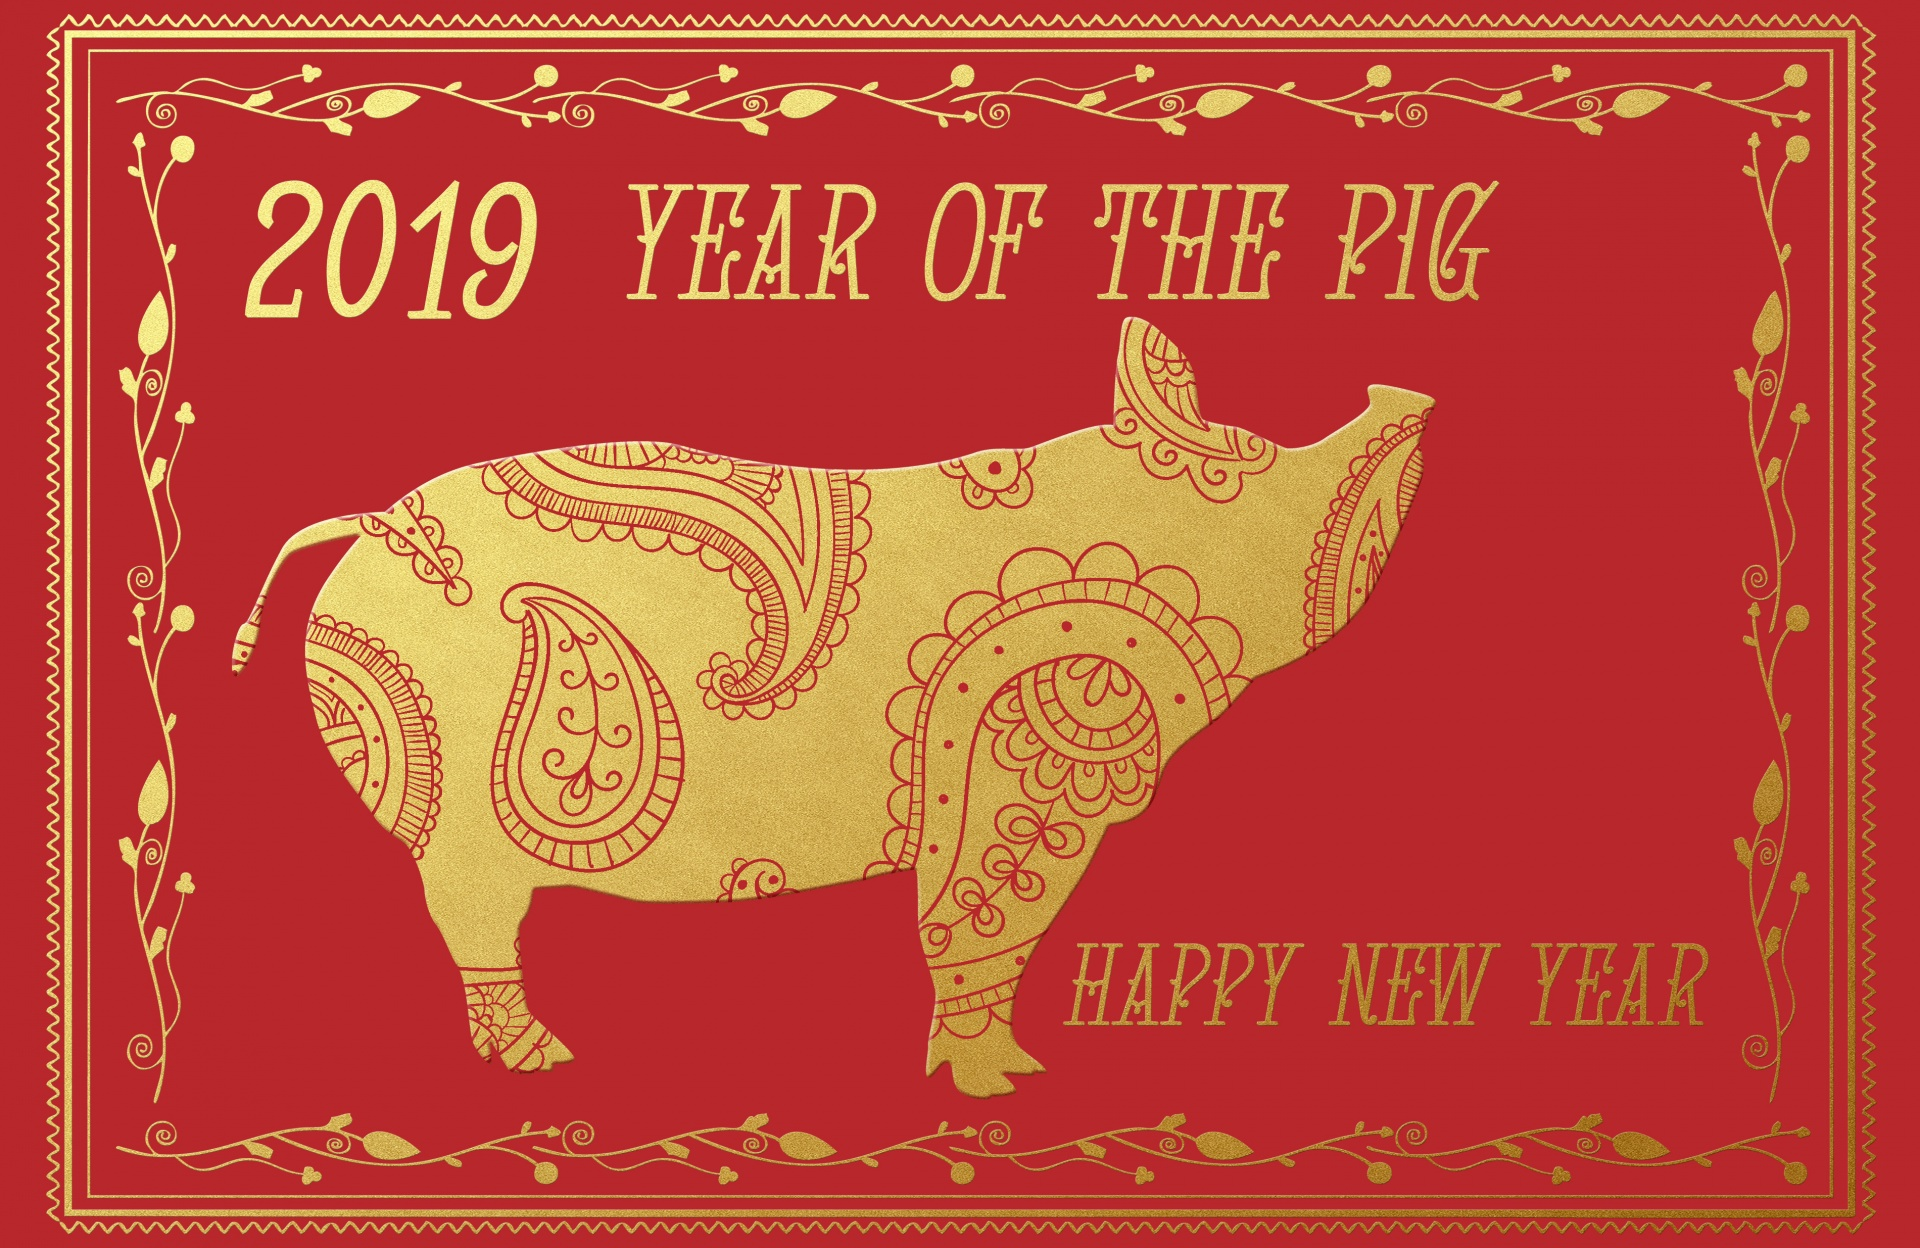 China Welcomes The Year Of The Pig!